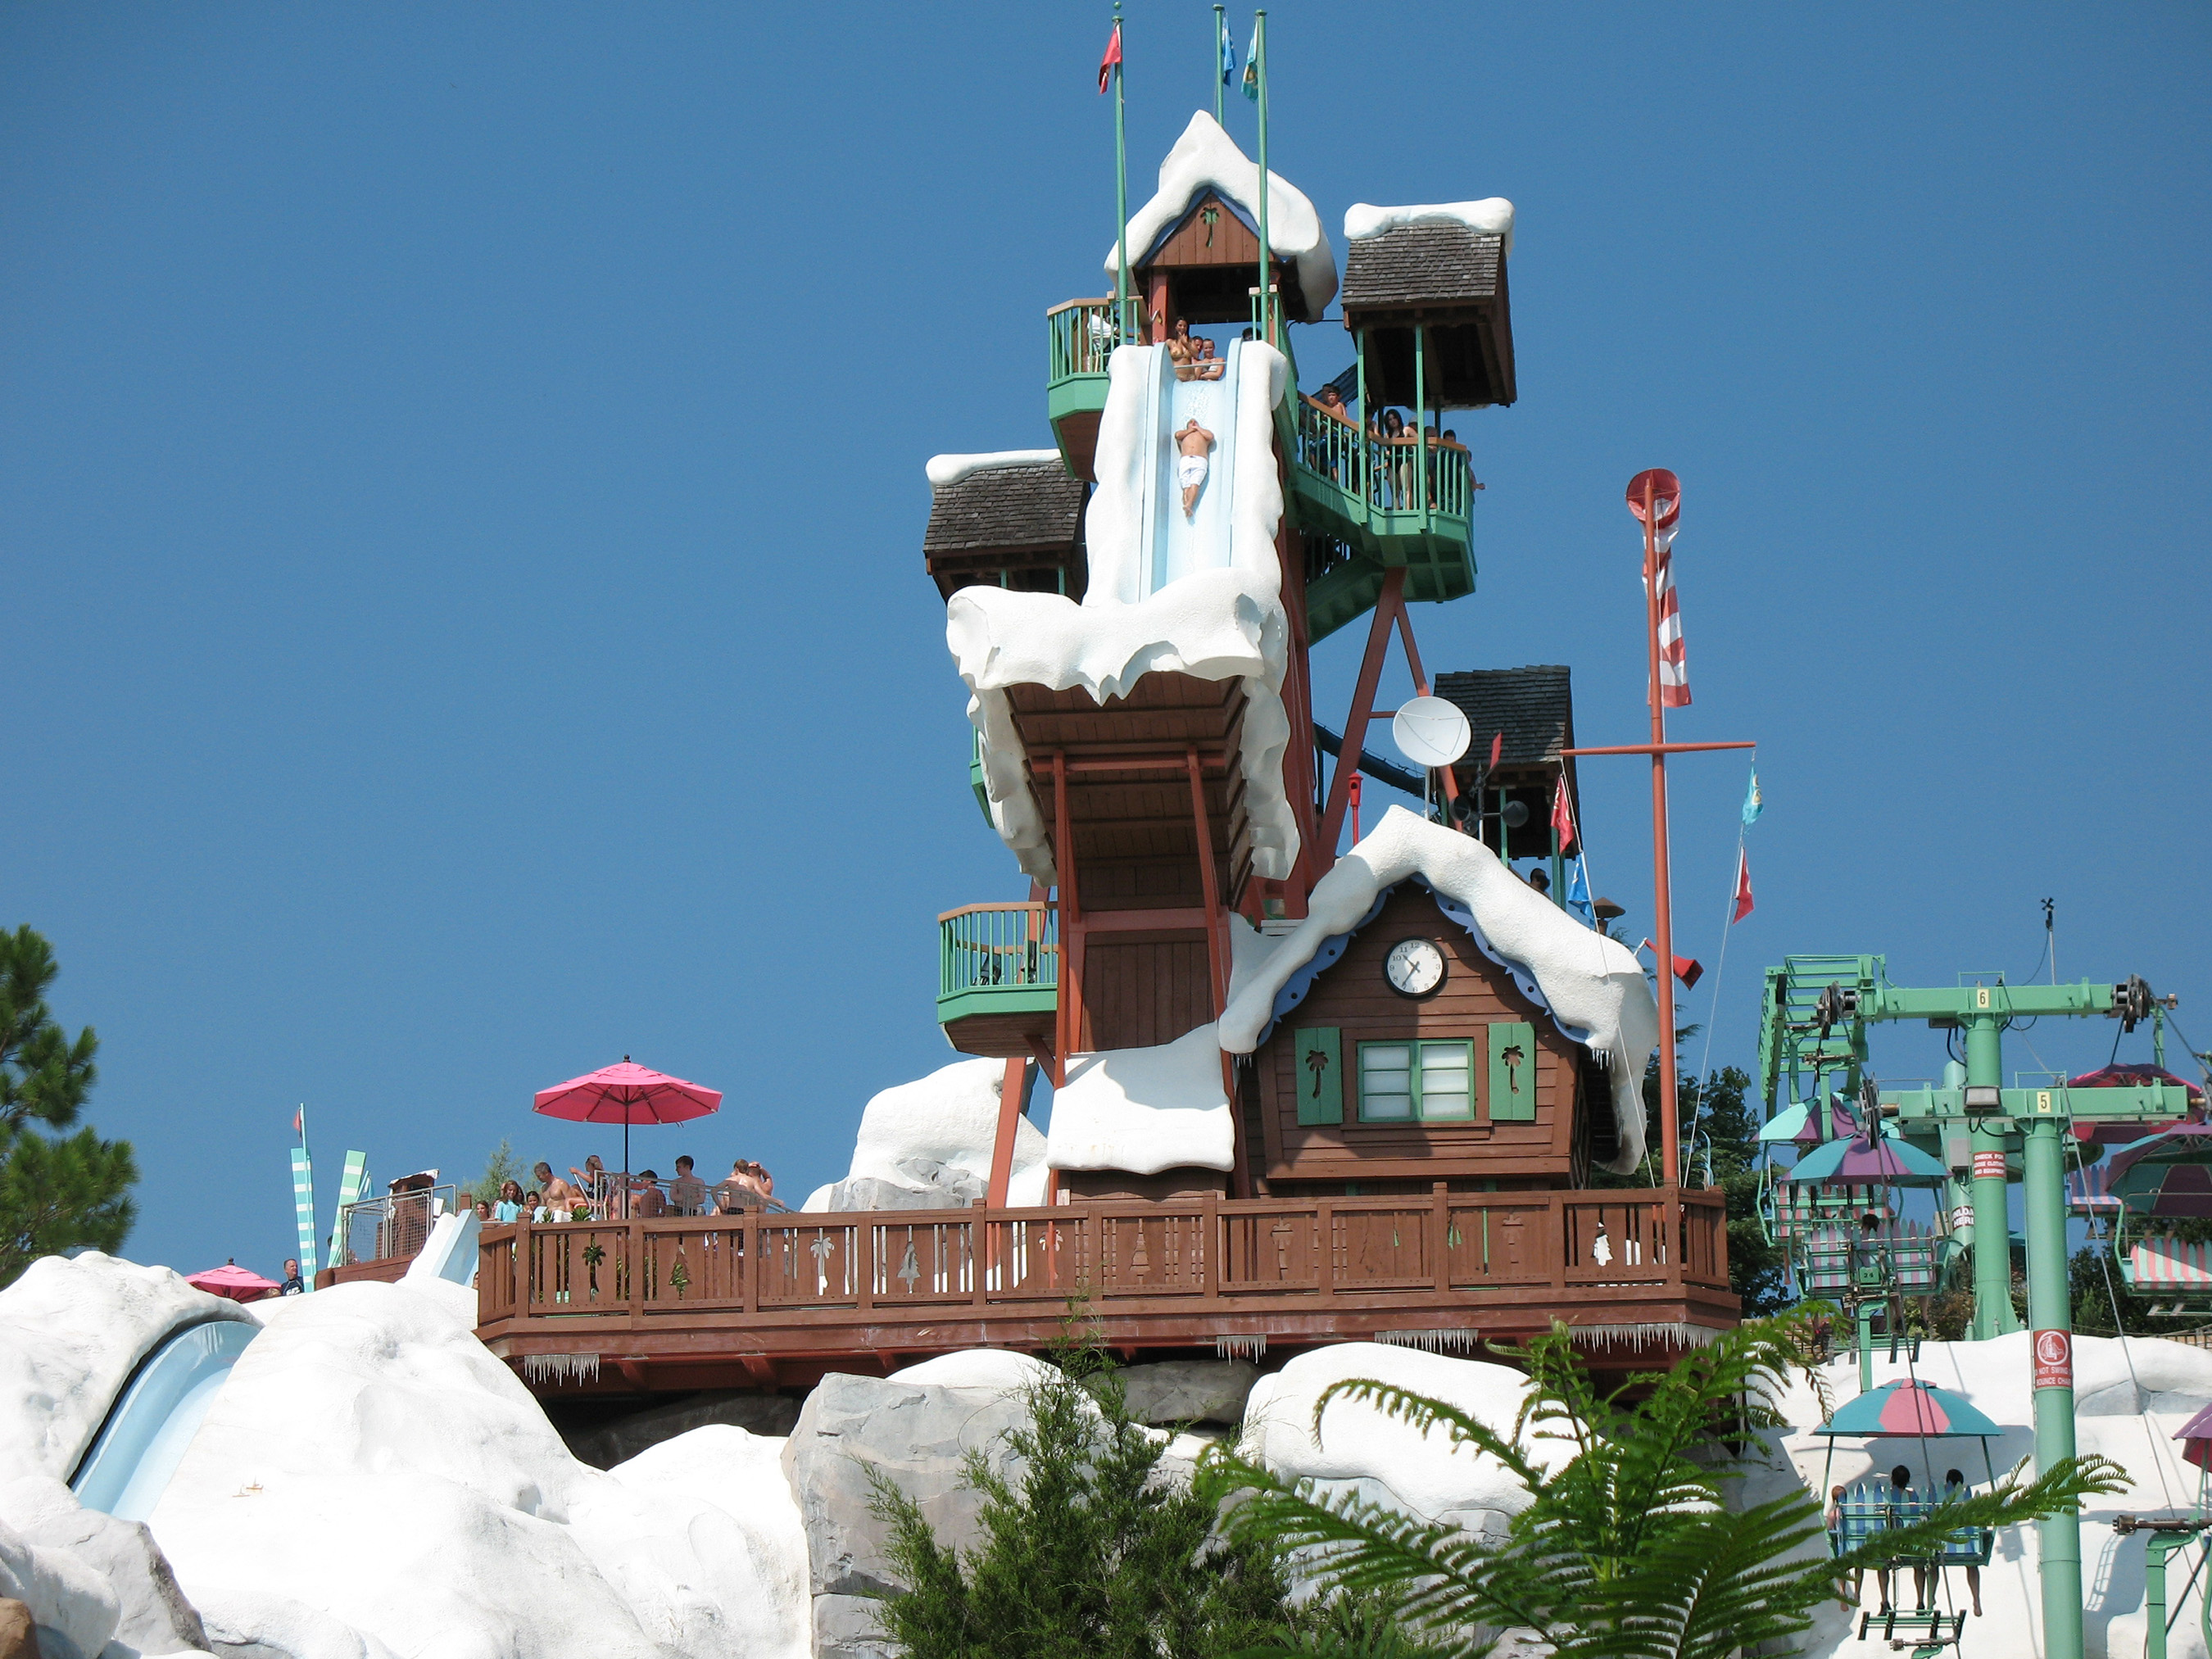 Disney's Blizzard Beach in Orlando, FL is the #1 water park in the U.S. (#3 world,) according to the TripAdvisor Travelers' Choice Amusement Parks and Water Parks.